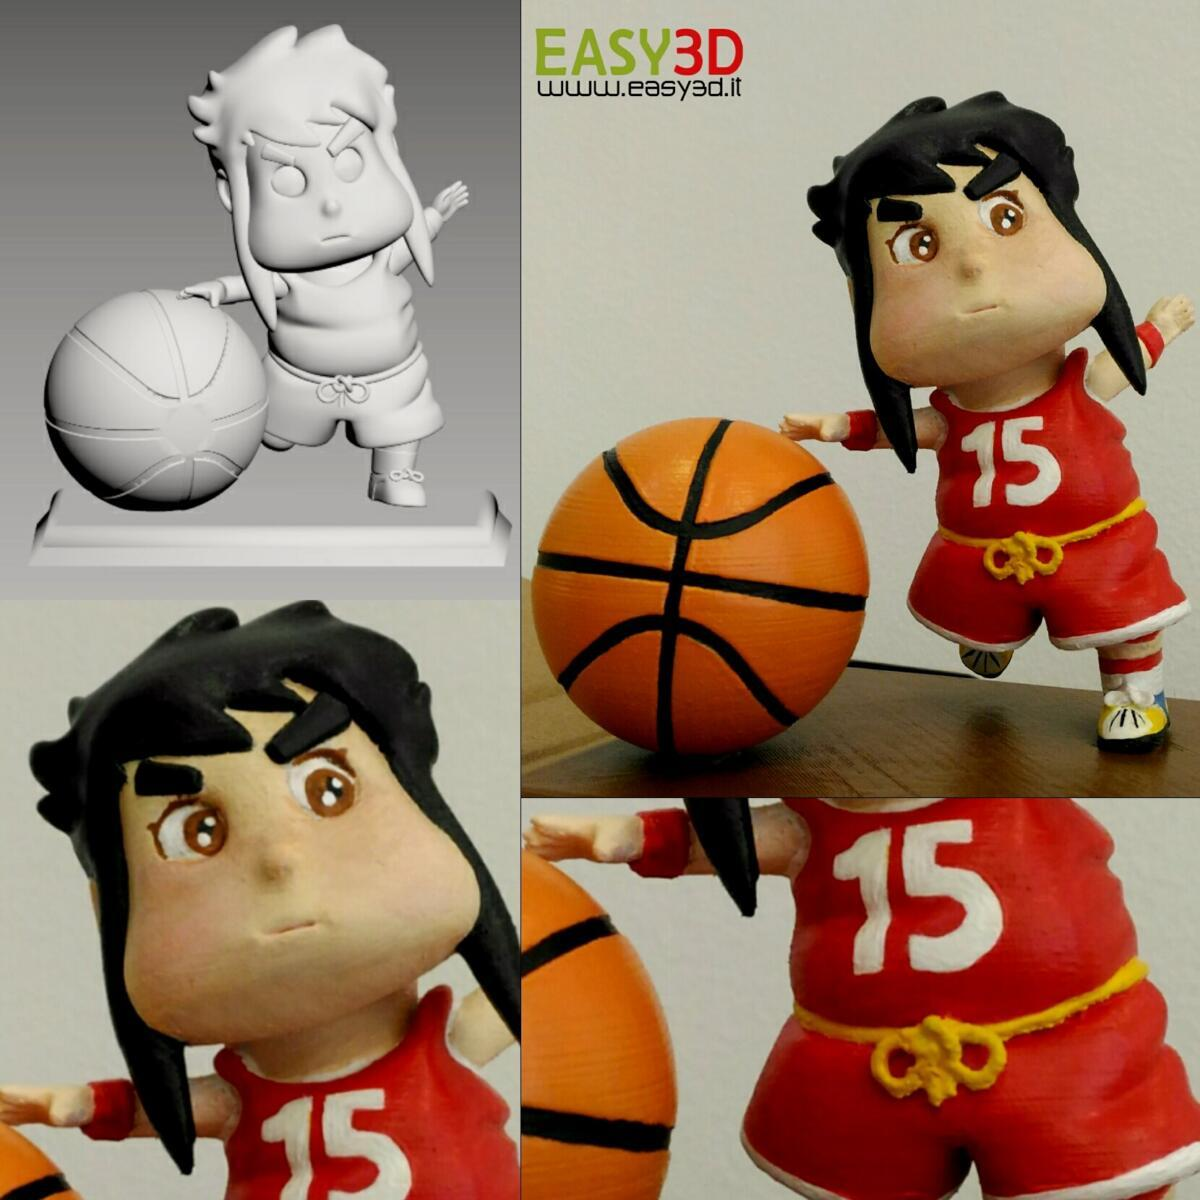 Statuine 3d action figure personalizzate stampa 3d Easy3D Palermo